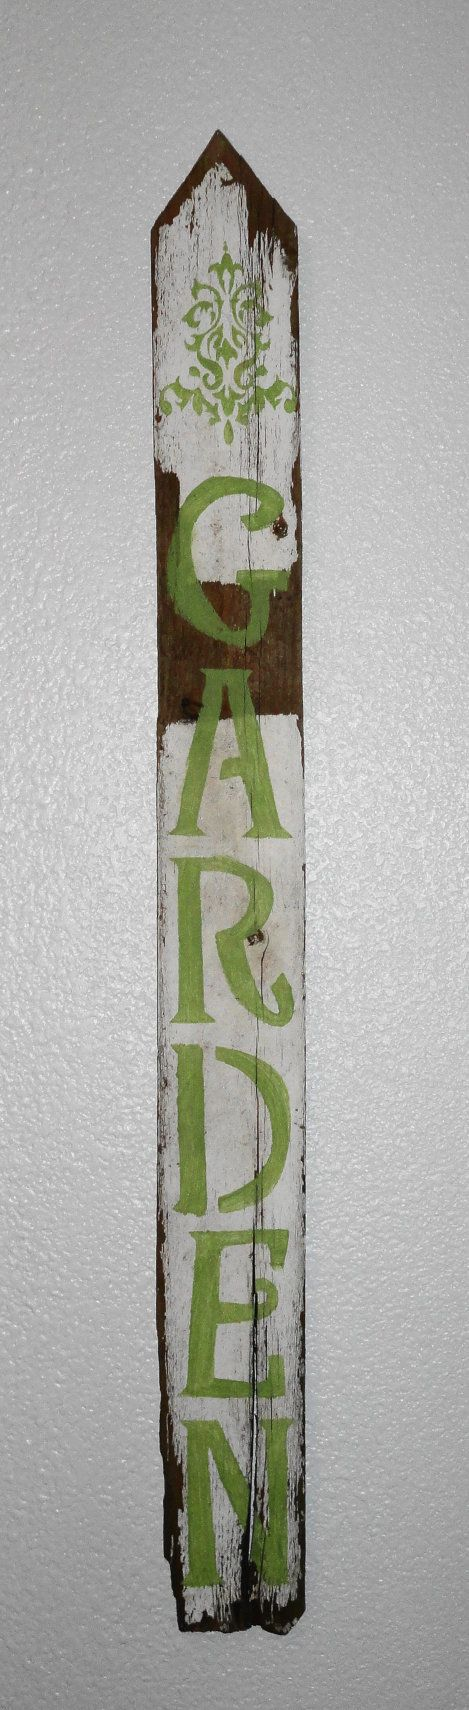 GARDEN Sign  Wooden Picket by AntiqueLoveBirds on Etsy